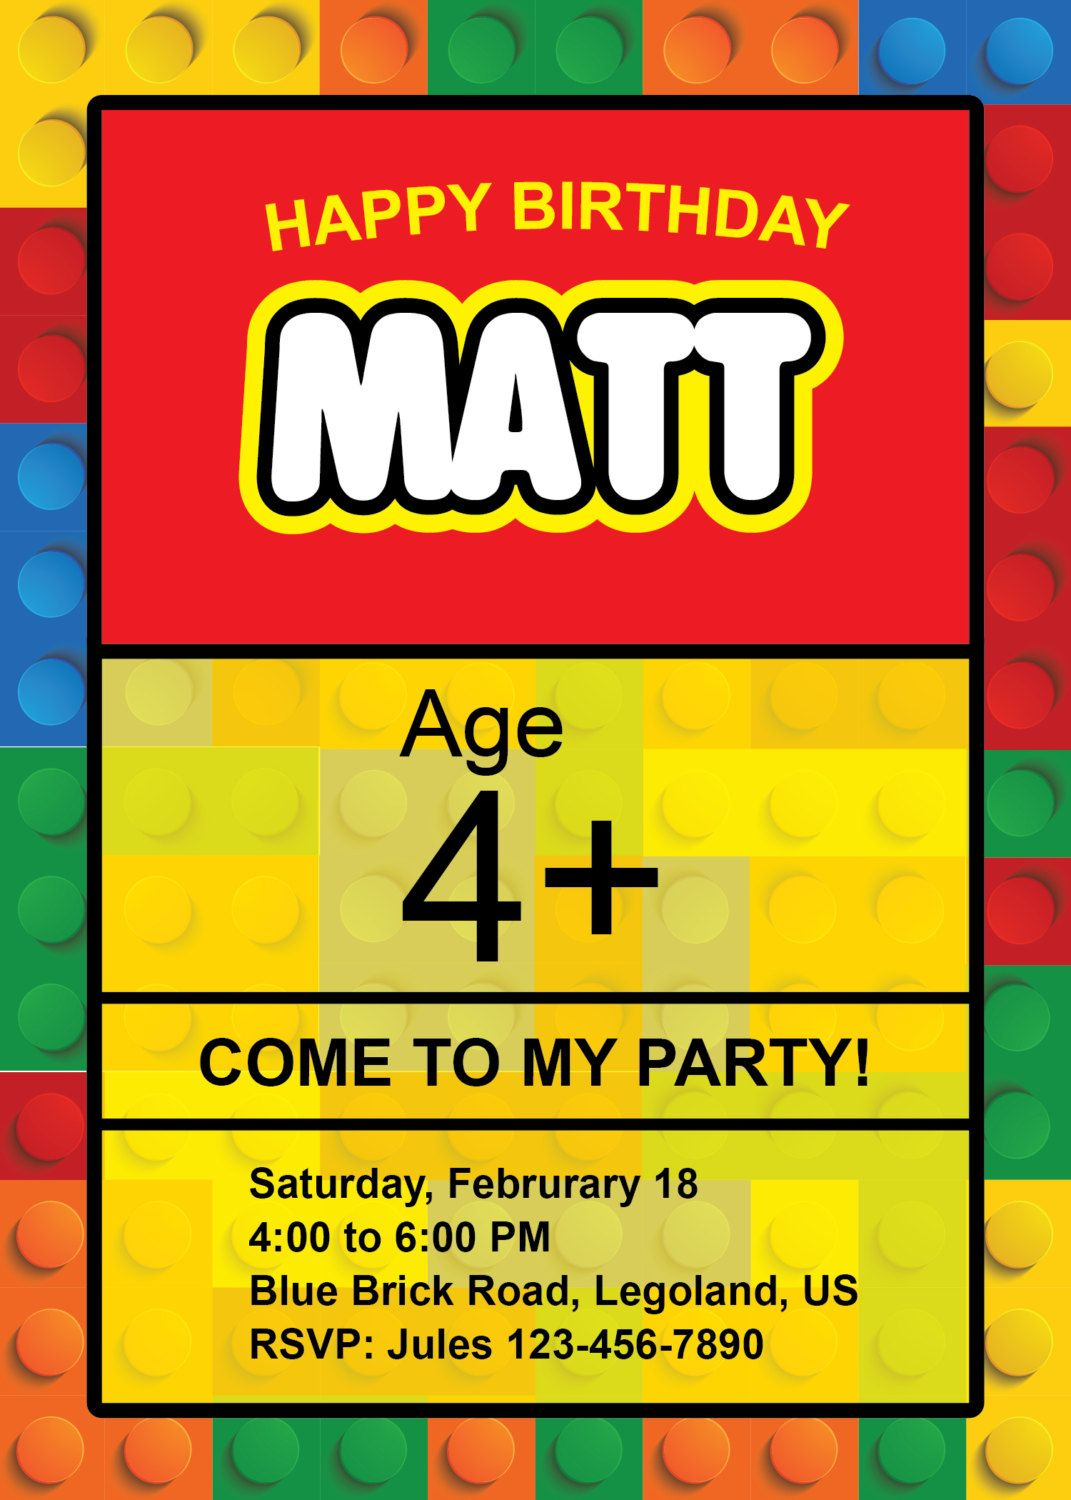 Lego Invitation Birthday Party Duplo Legoland Legos